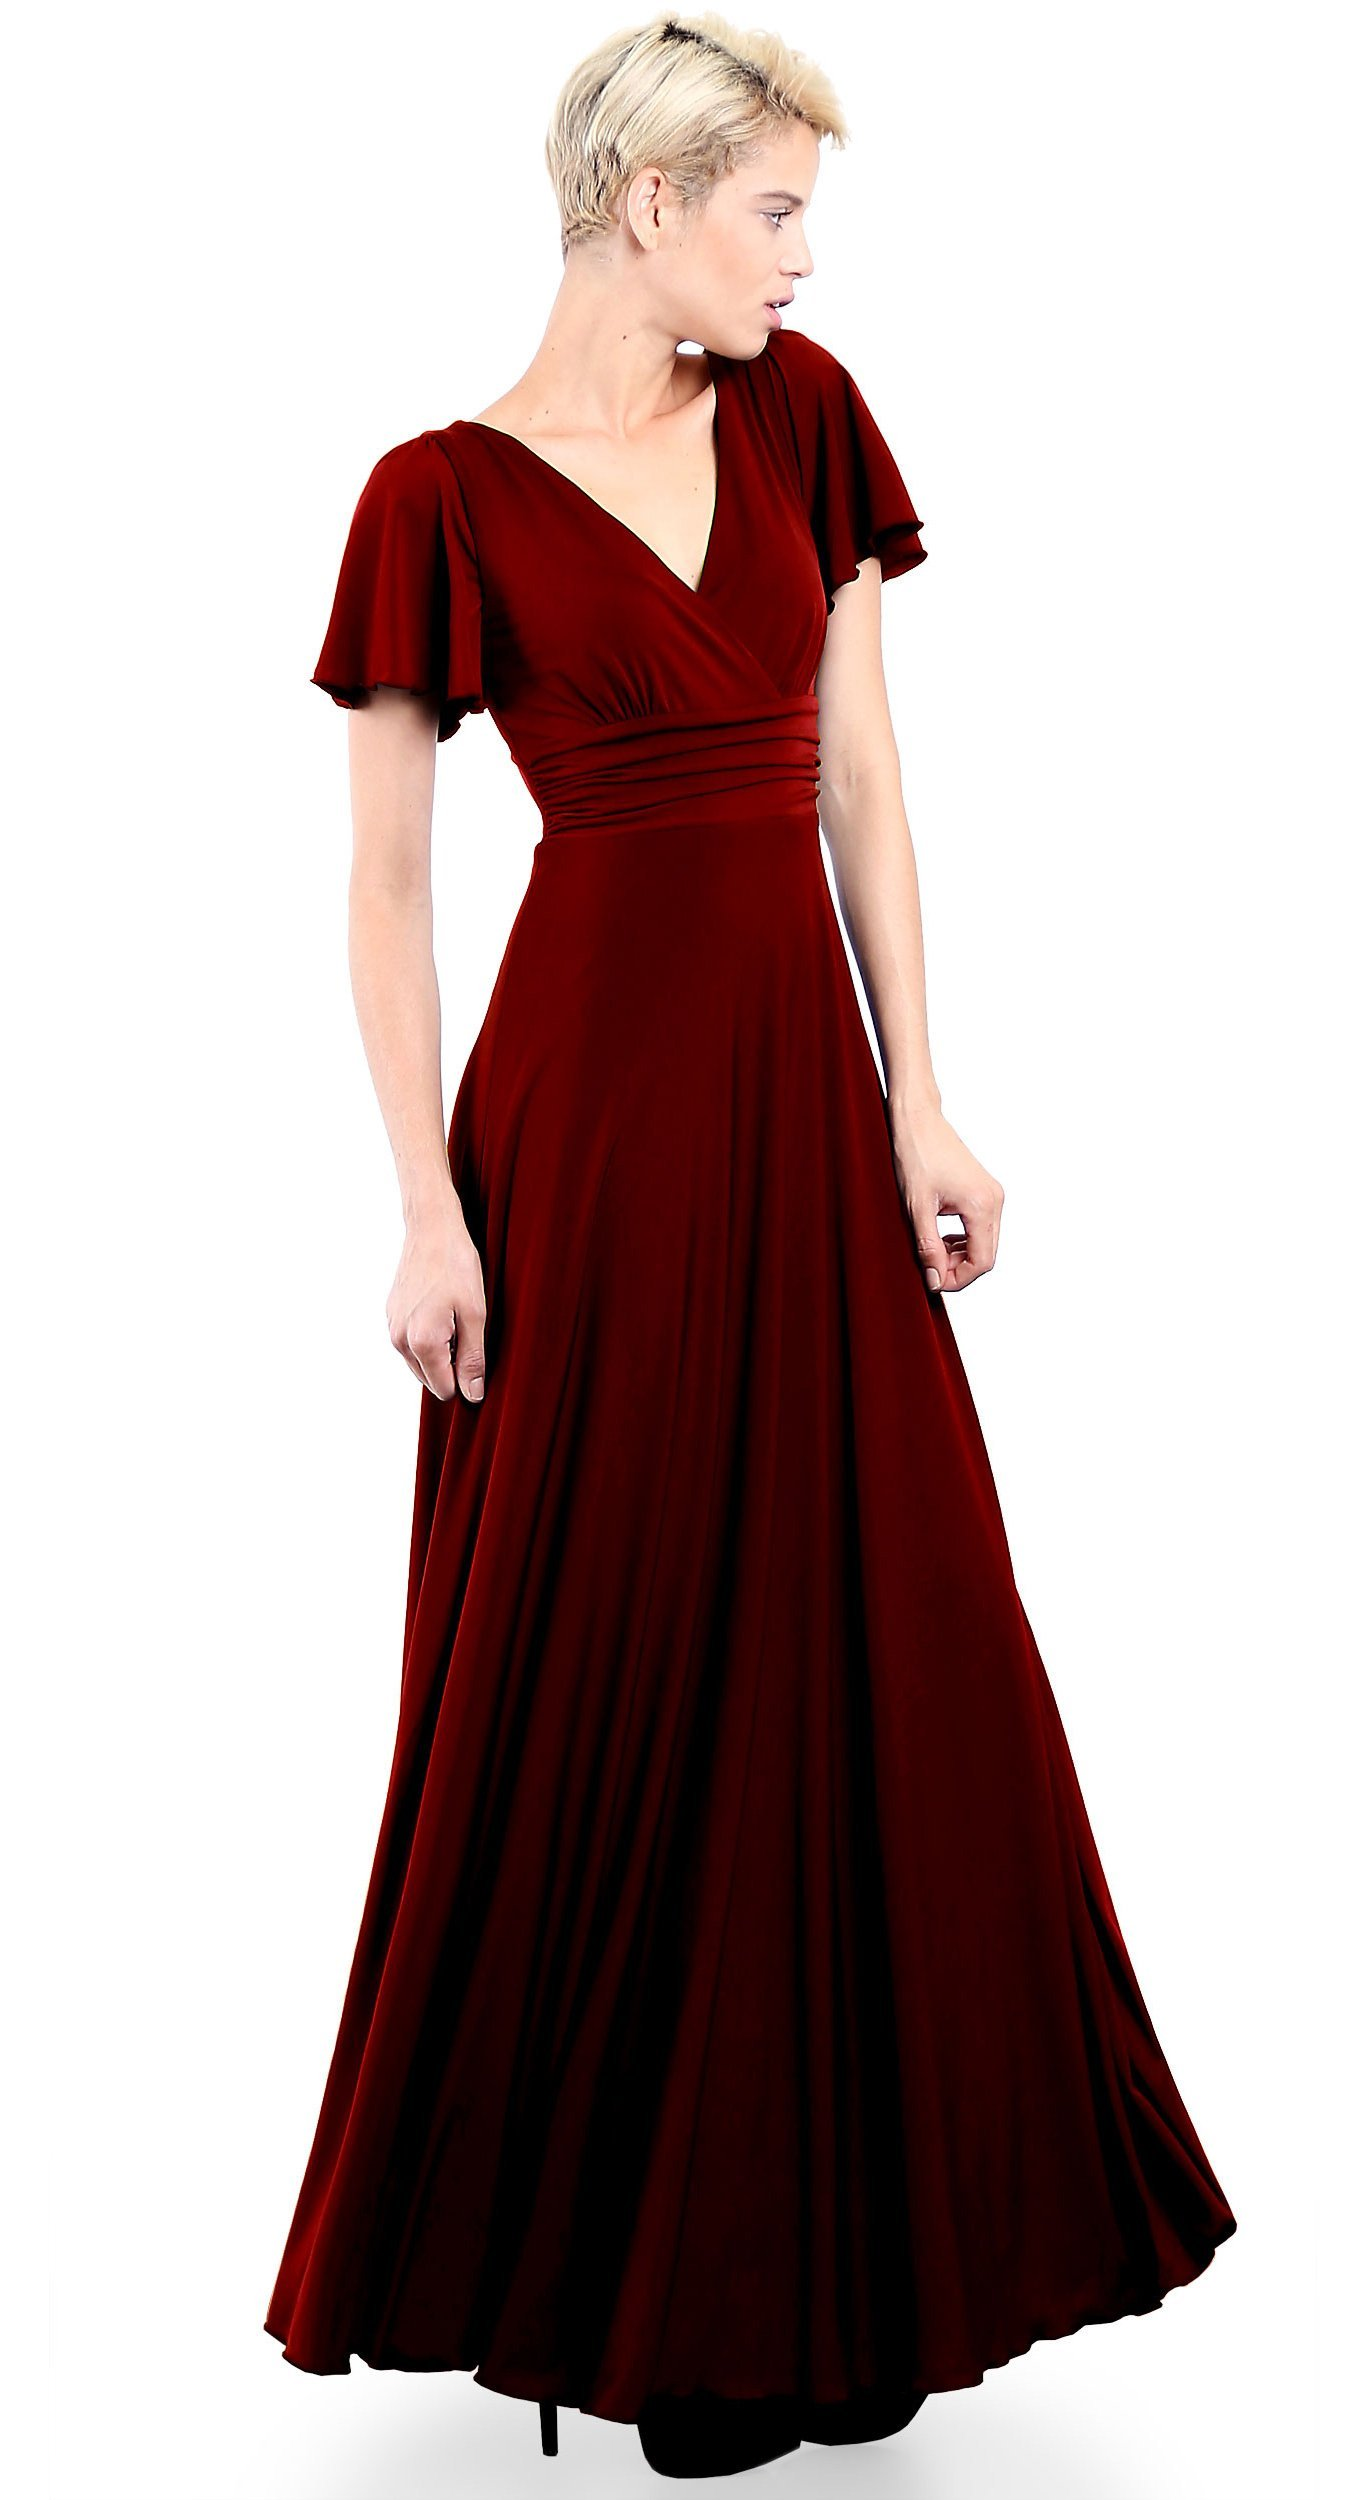 fc9f9e0d6fb1 EVANESE Women's Plus Size Evening Formal Long Dress Gown with Short Sleeves  2X, Wine